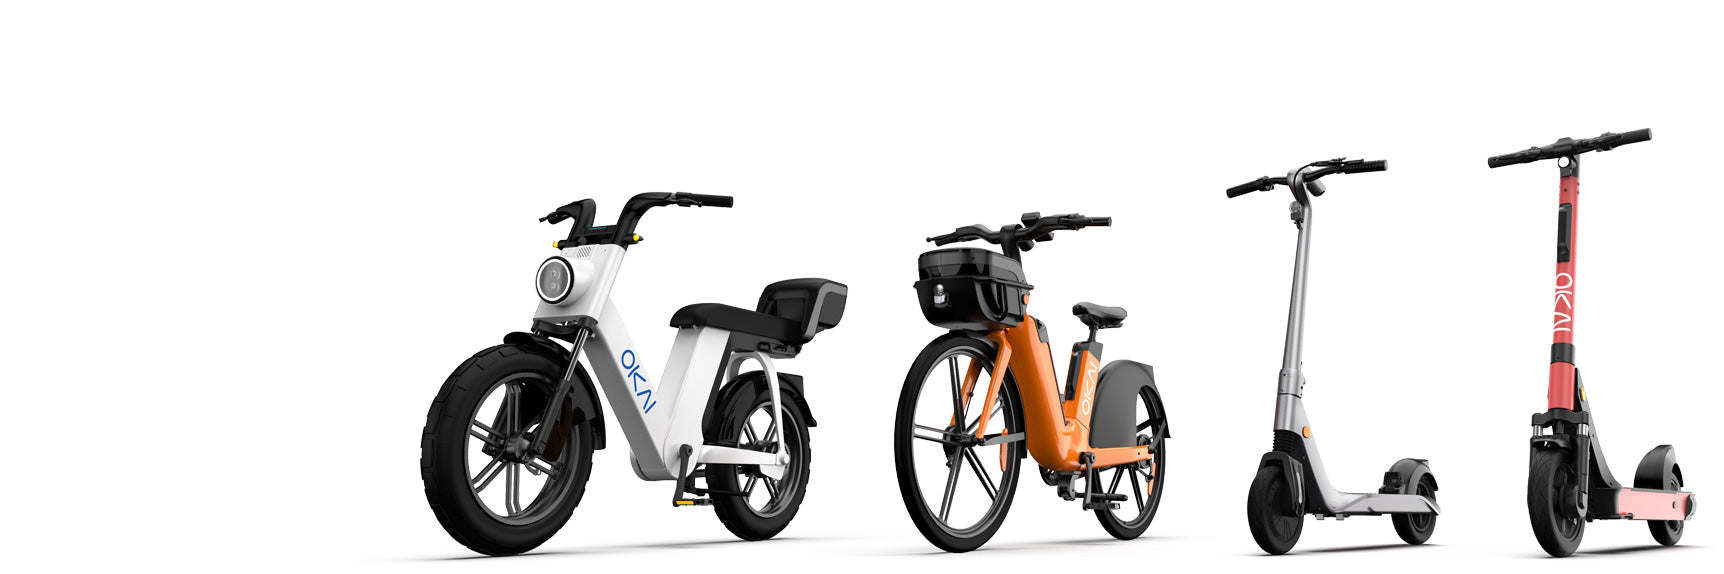 Okai-Electric-Scooter-&-Electric-Bike-Manufacturer-micromobility-vehicles-overview-of-4-okai-products